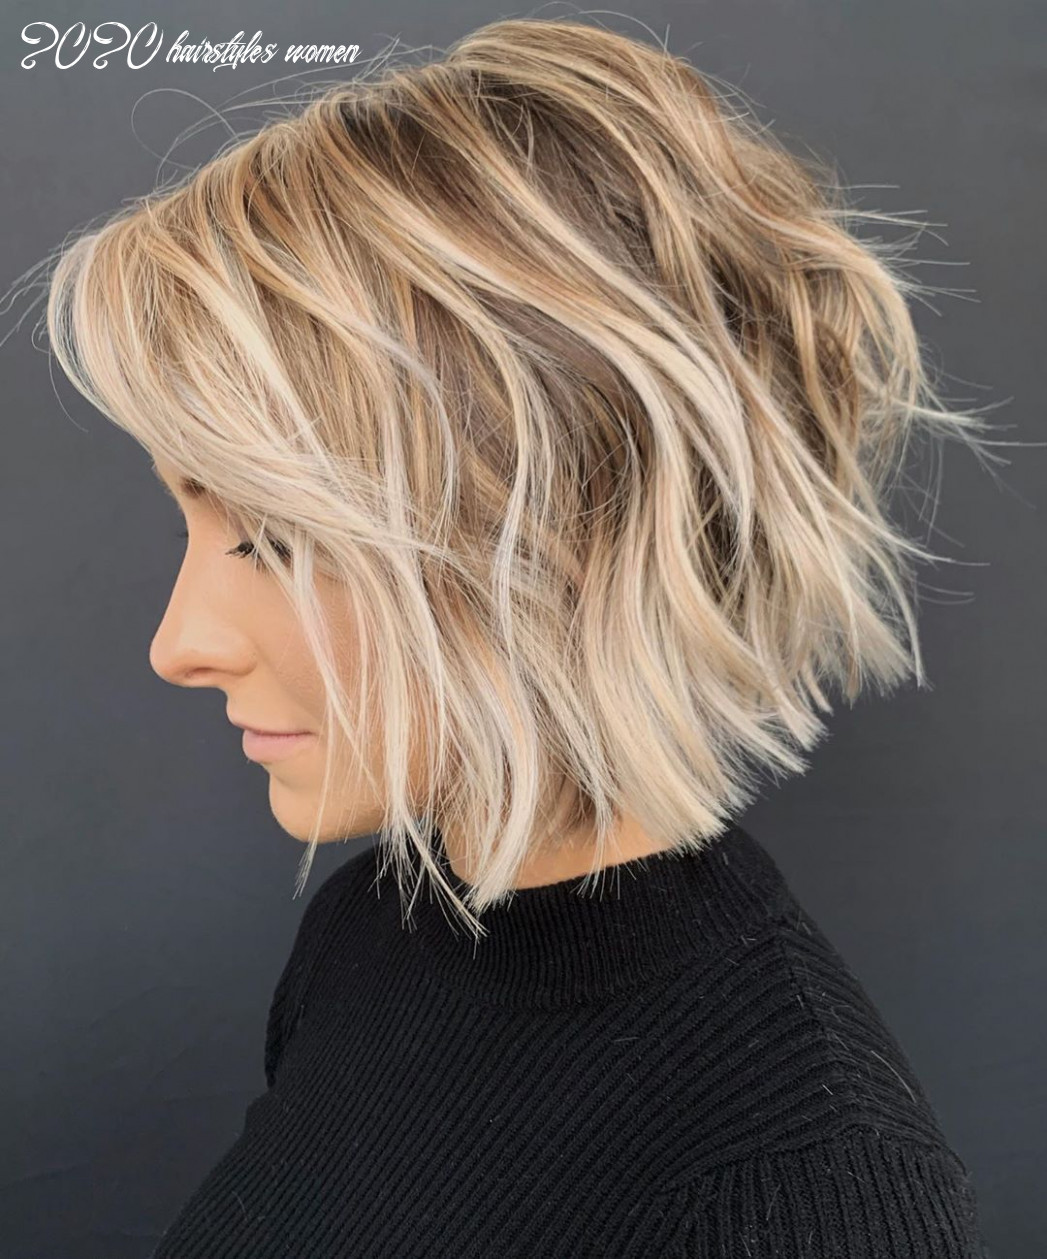 11 newest haircut ideas and haircut trends for 11 hair adviser 2020 hairstyles women